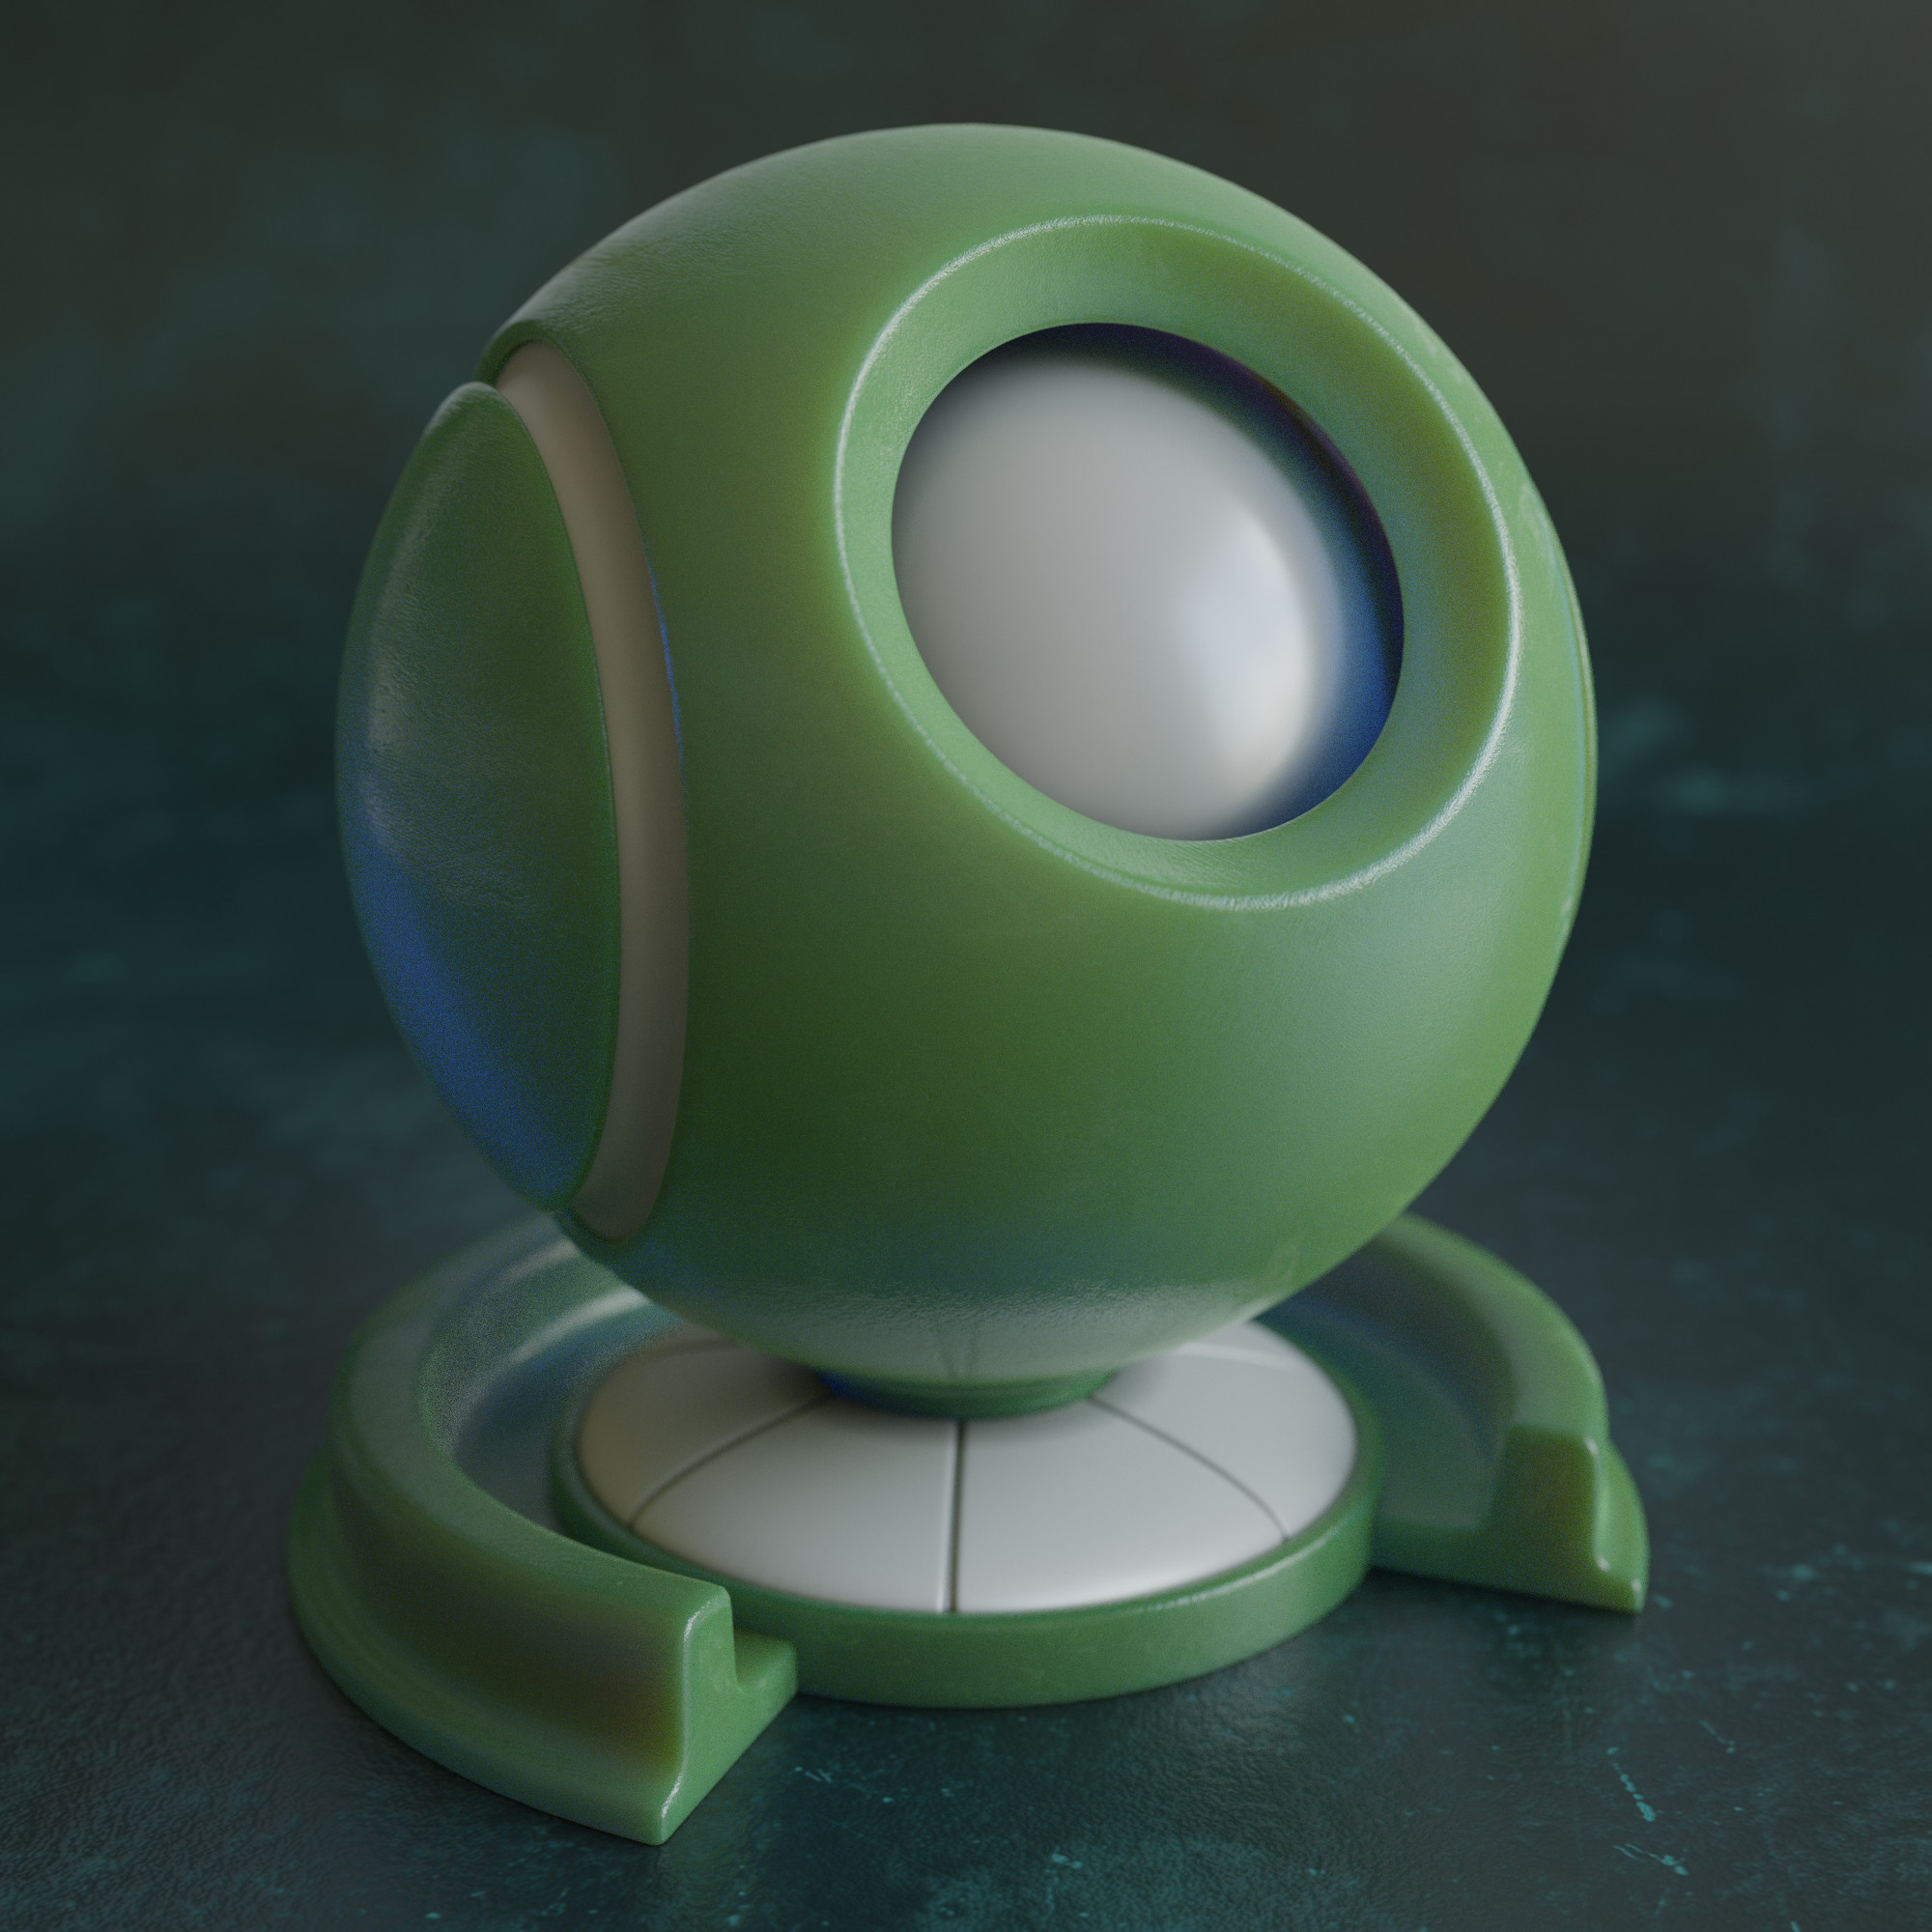 Initial pass at creating a material preview. Simple translucent plastic shown